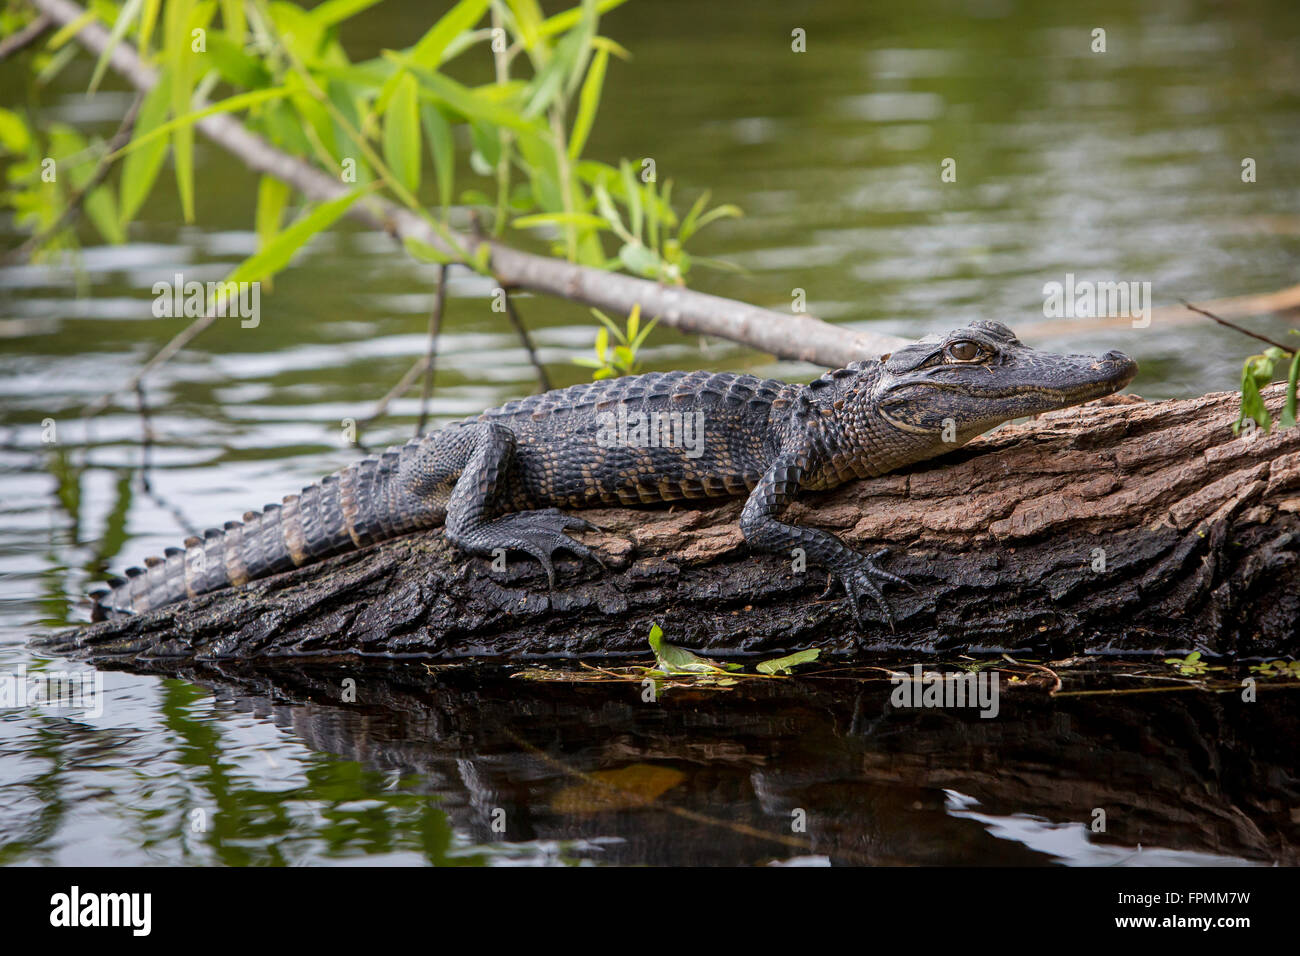 Young Alligator (Alligator Mississippiensis) resting on submerged log in Everglades National Park, Florida, USA Stock Photo